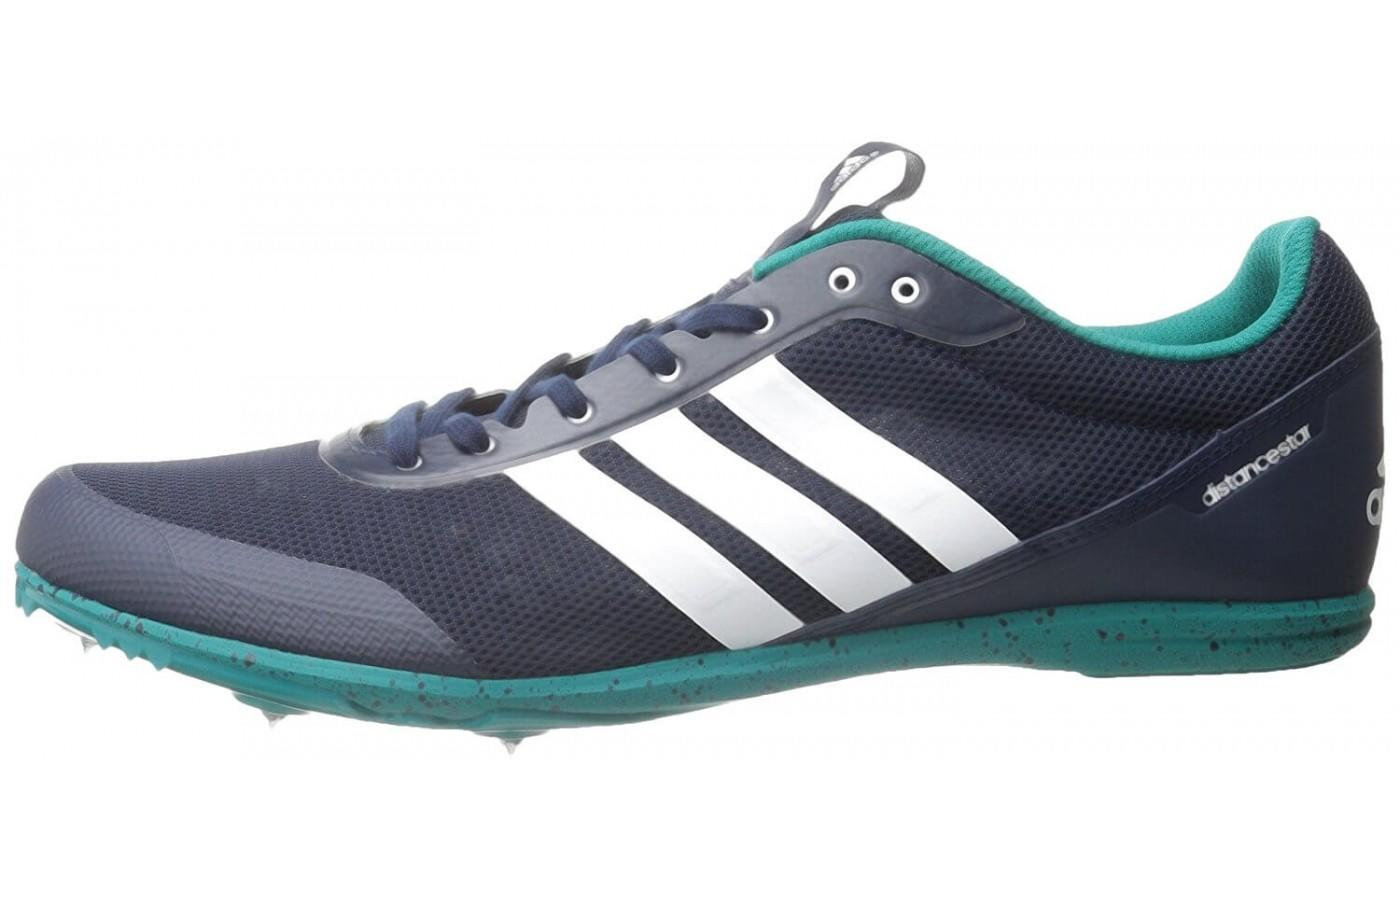 This is a lightweight track racing shoe